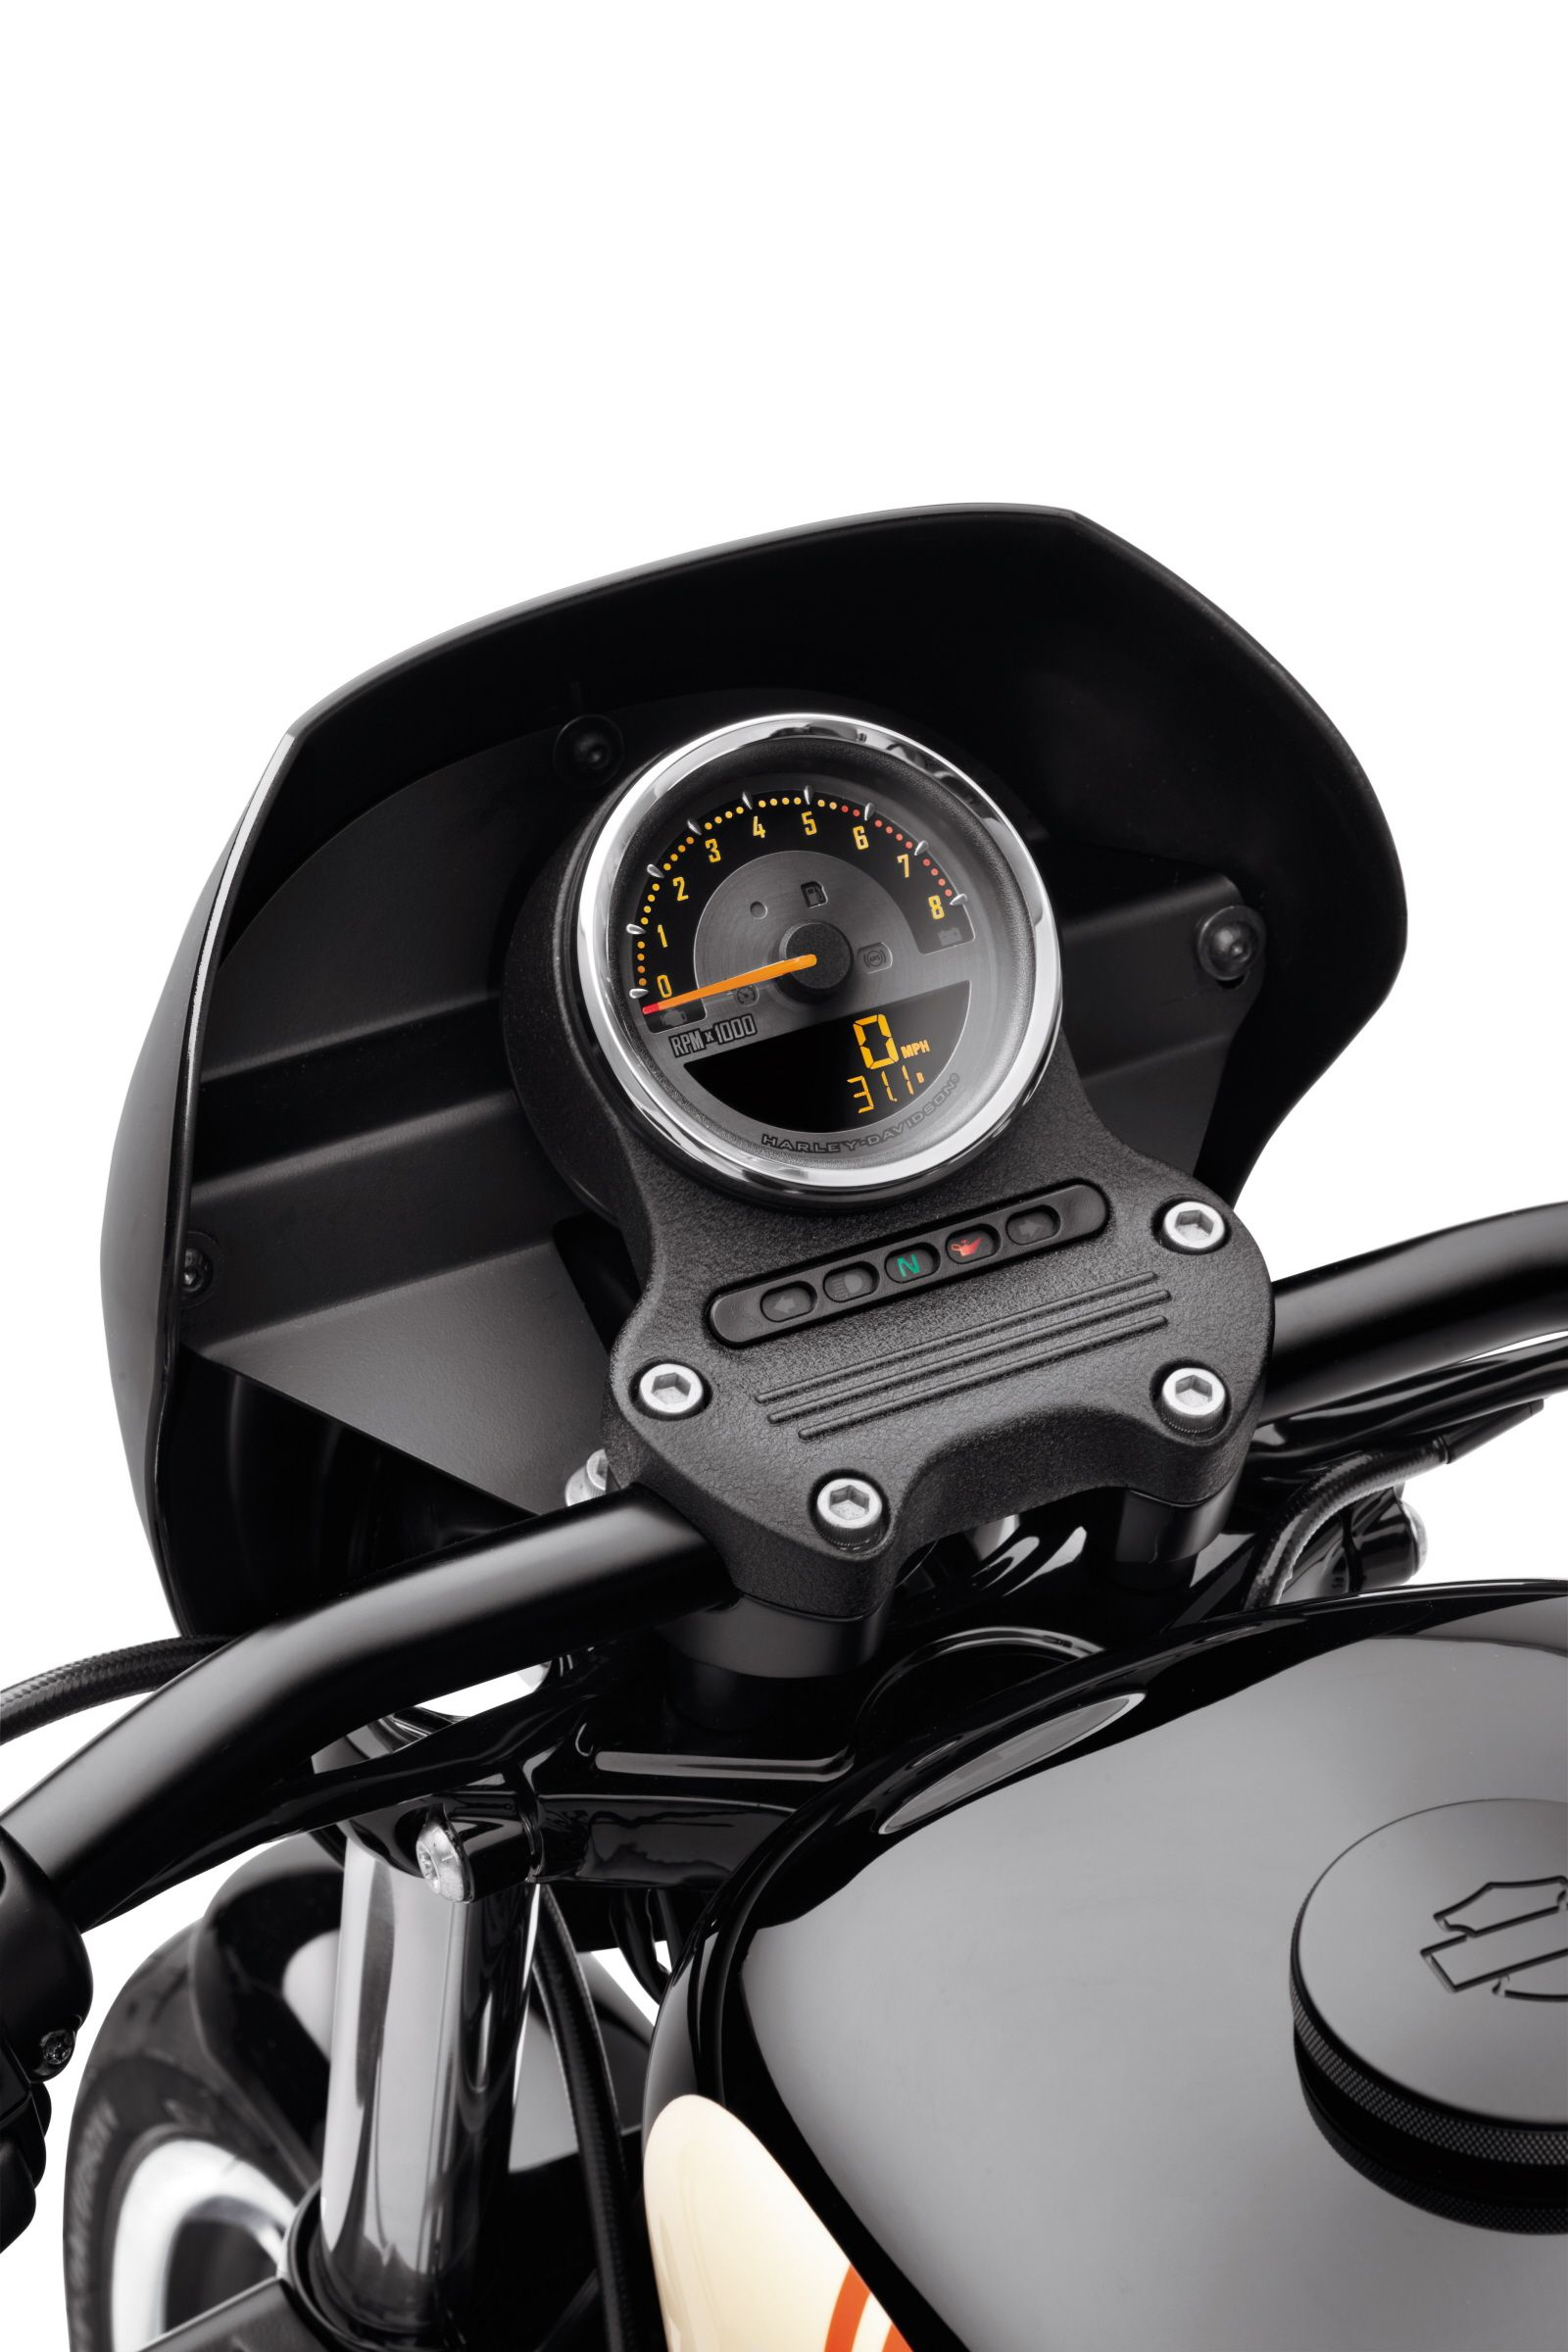 small resolution of  fuel level and gear position without adding additional handlebar mounted gauges harley davidson combination digital speedometer analog tachometer